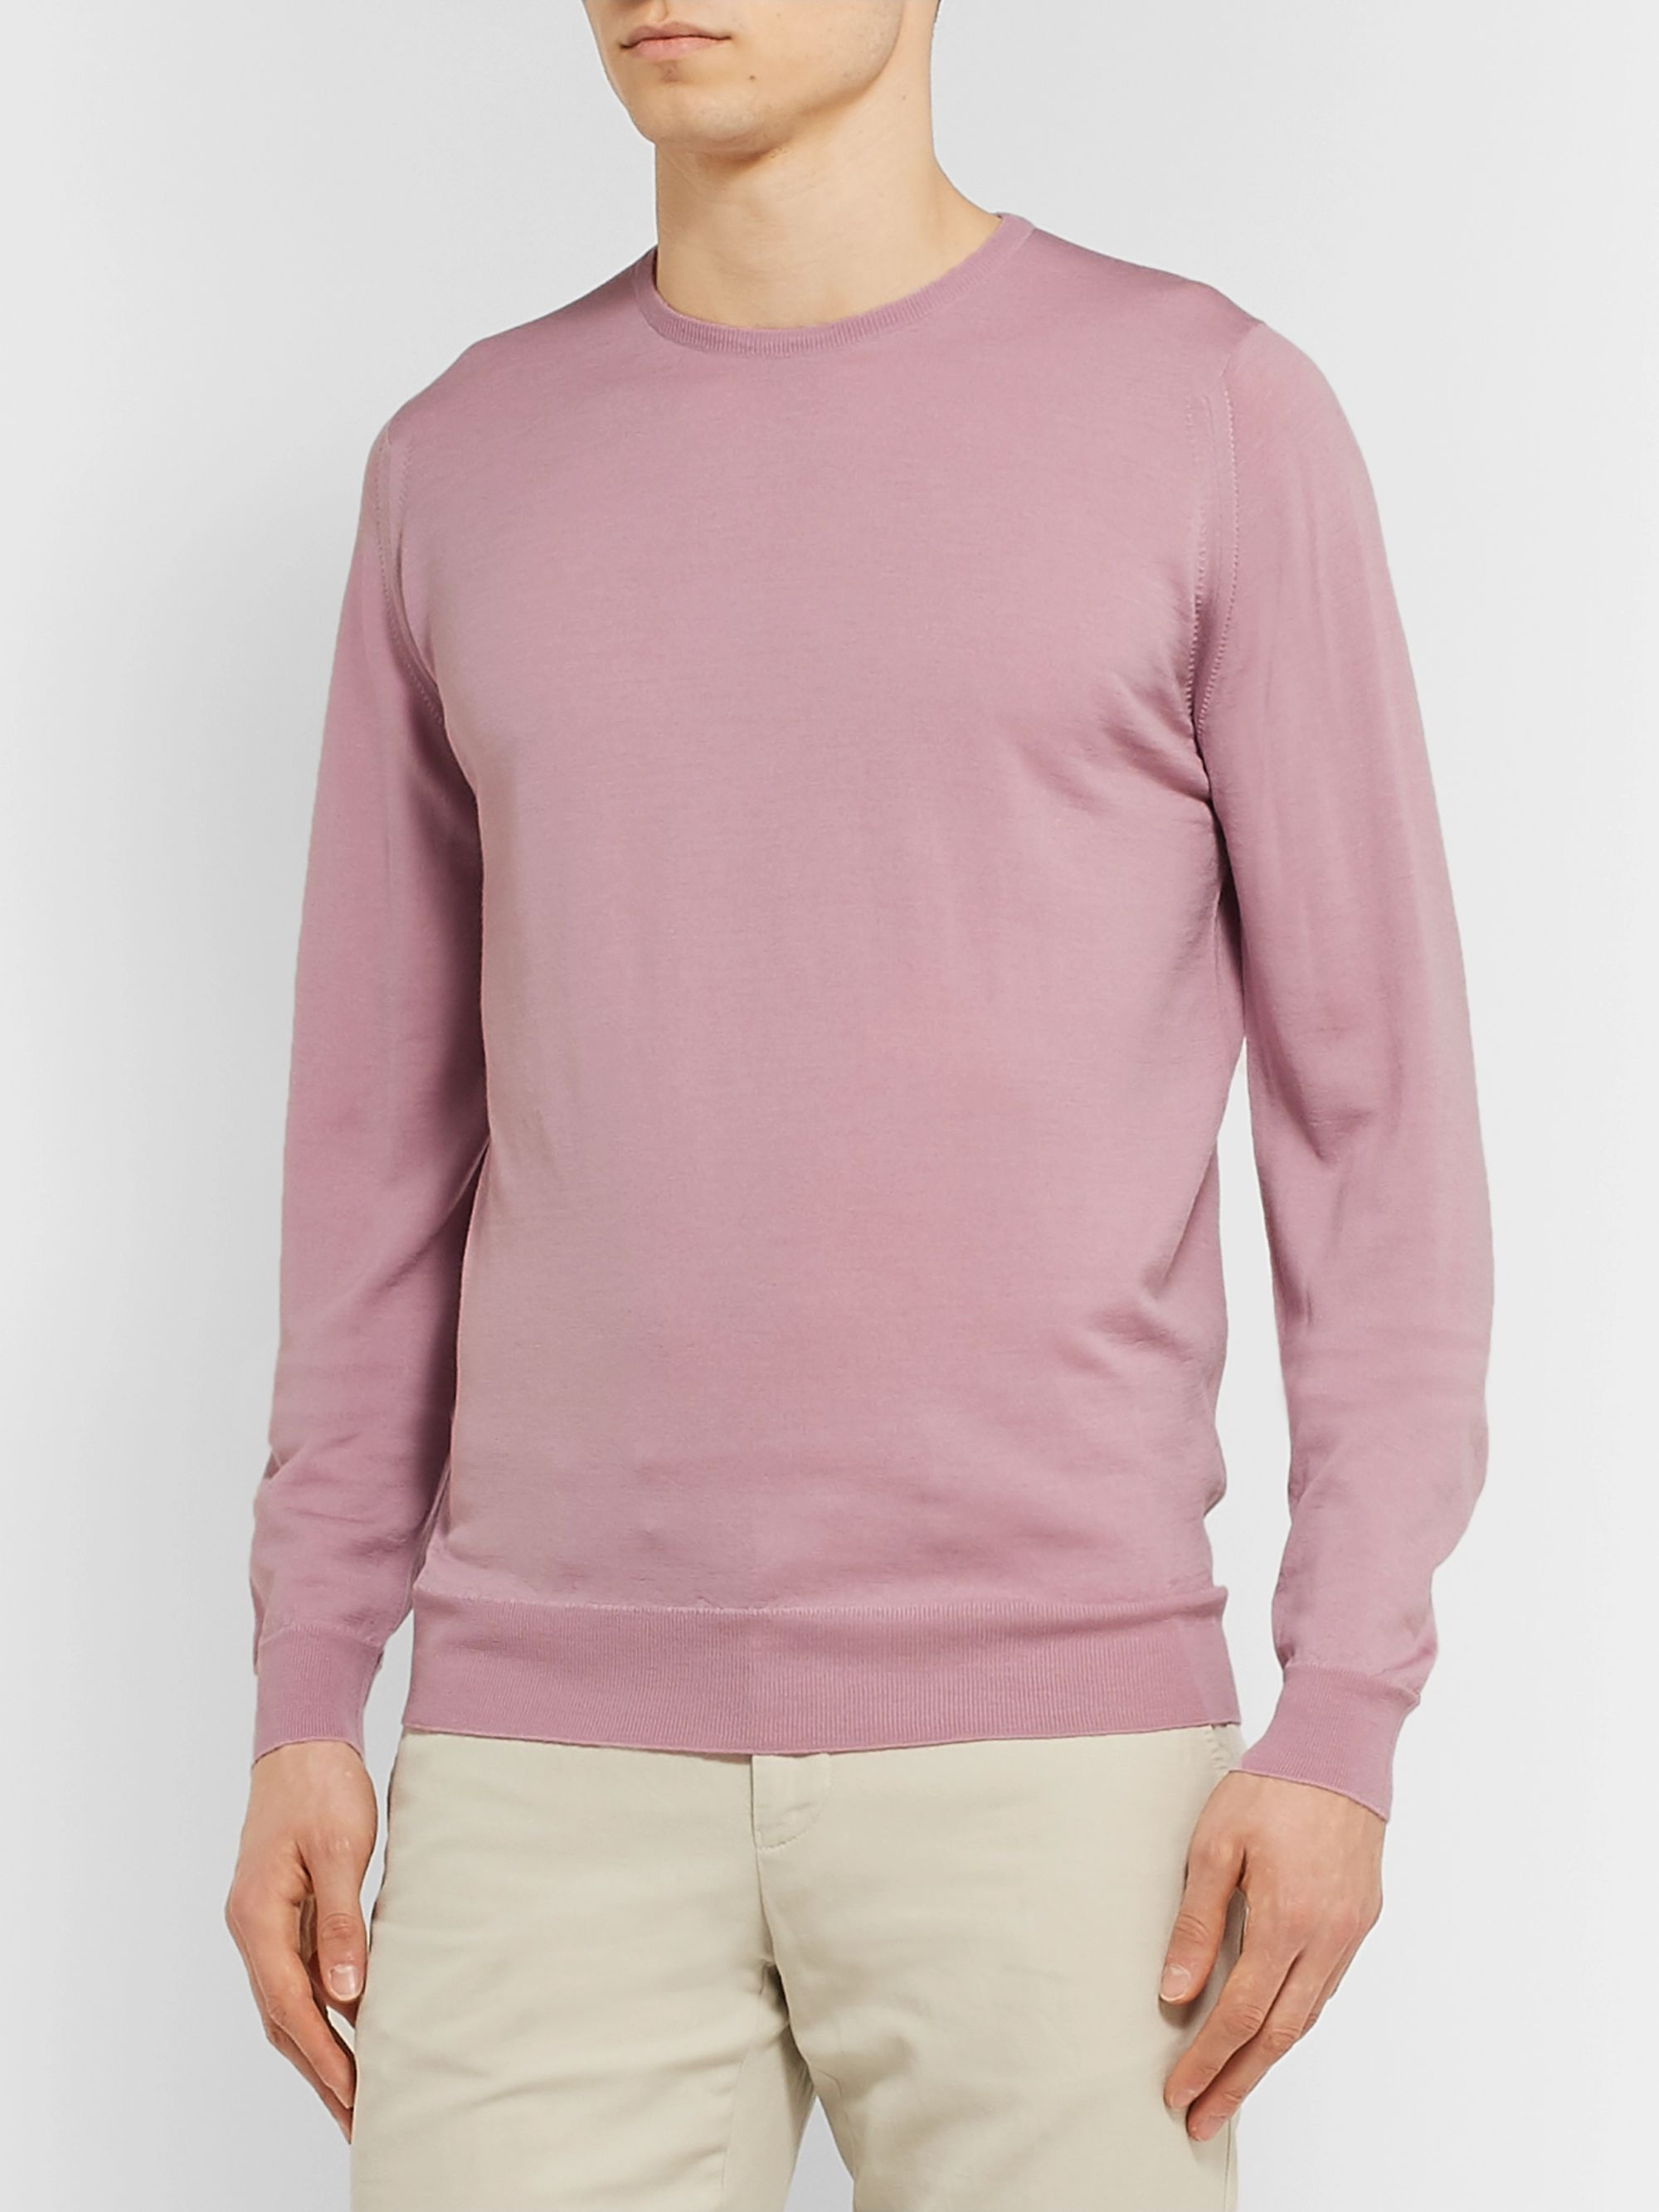 John Smedley Virgin Wool Sweater